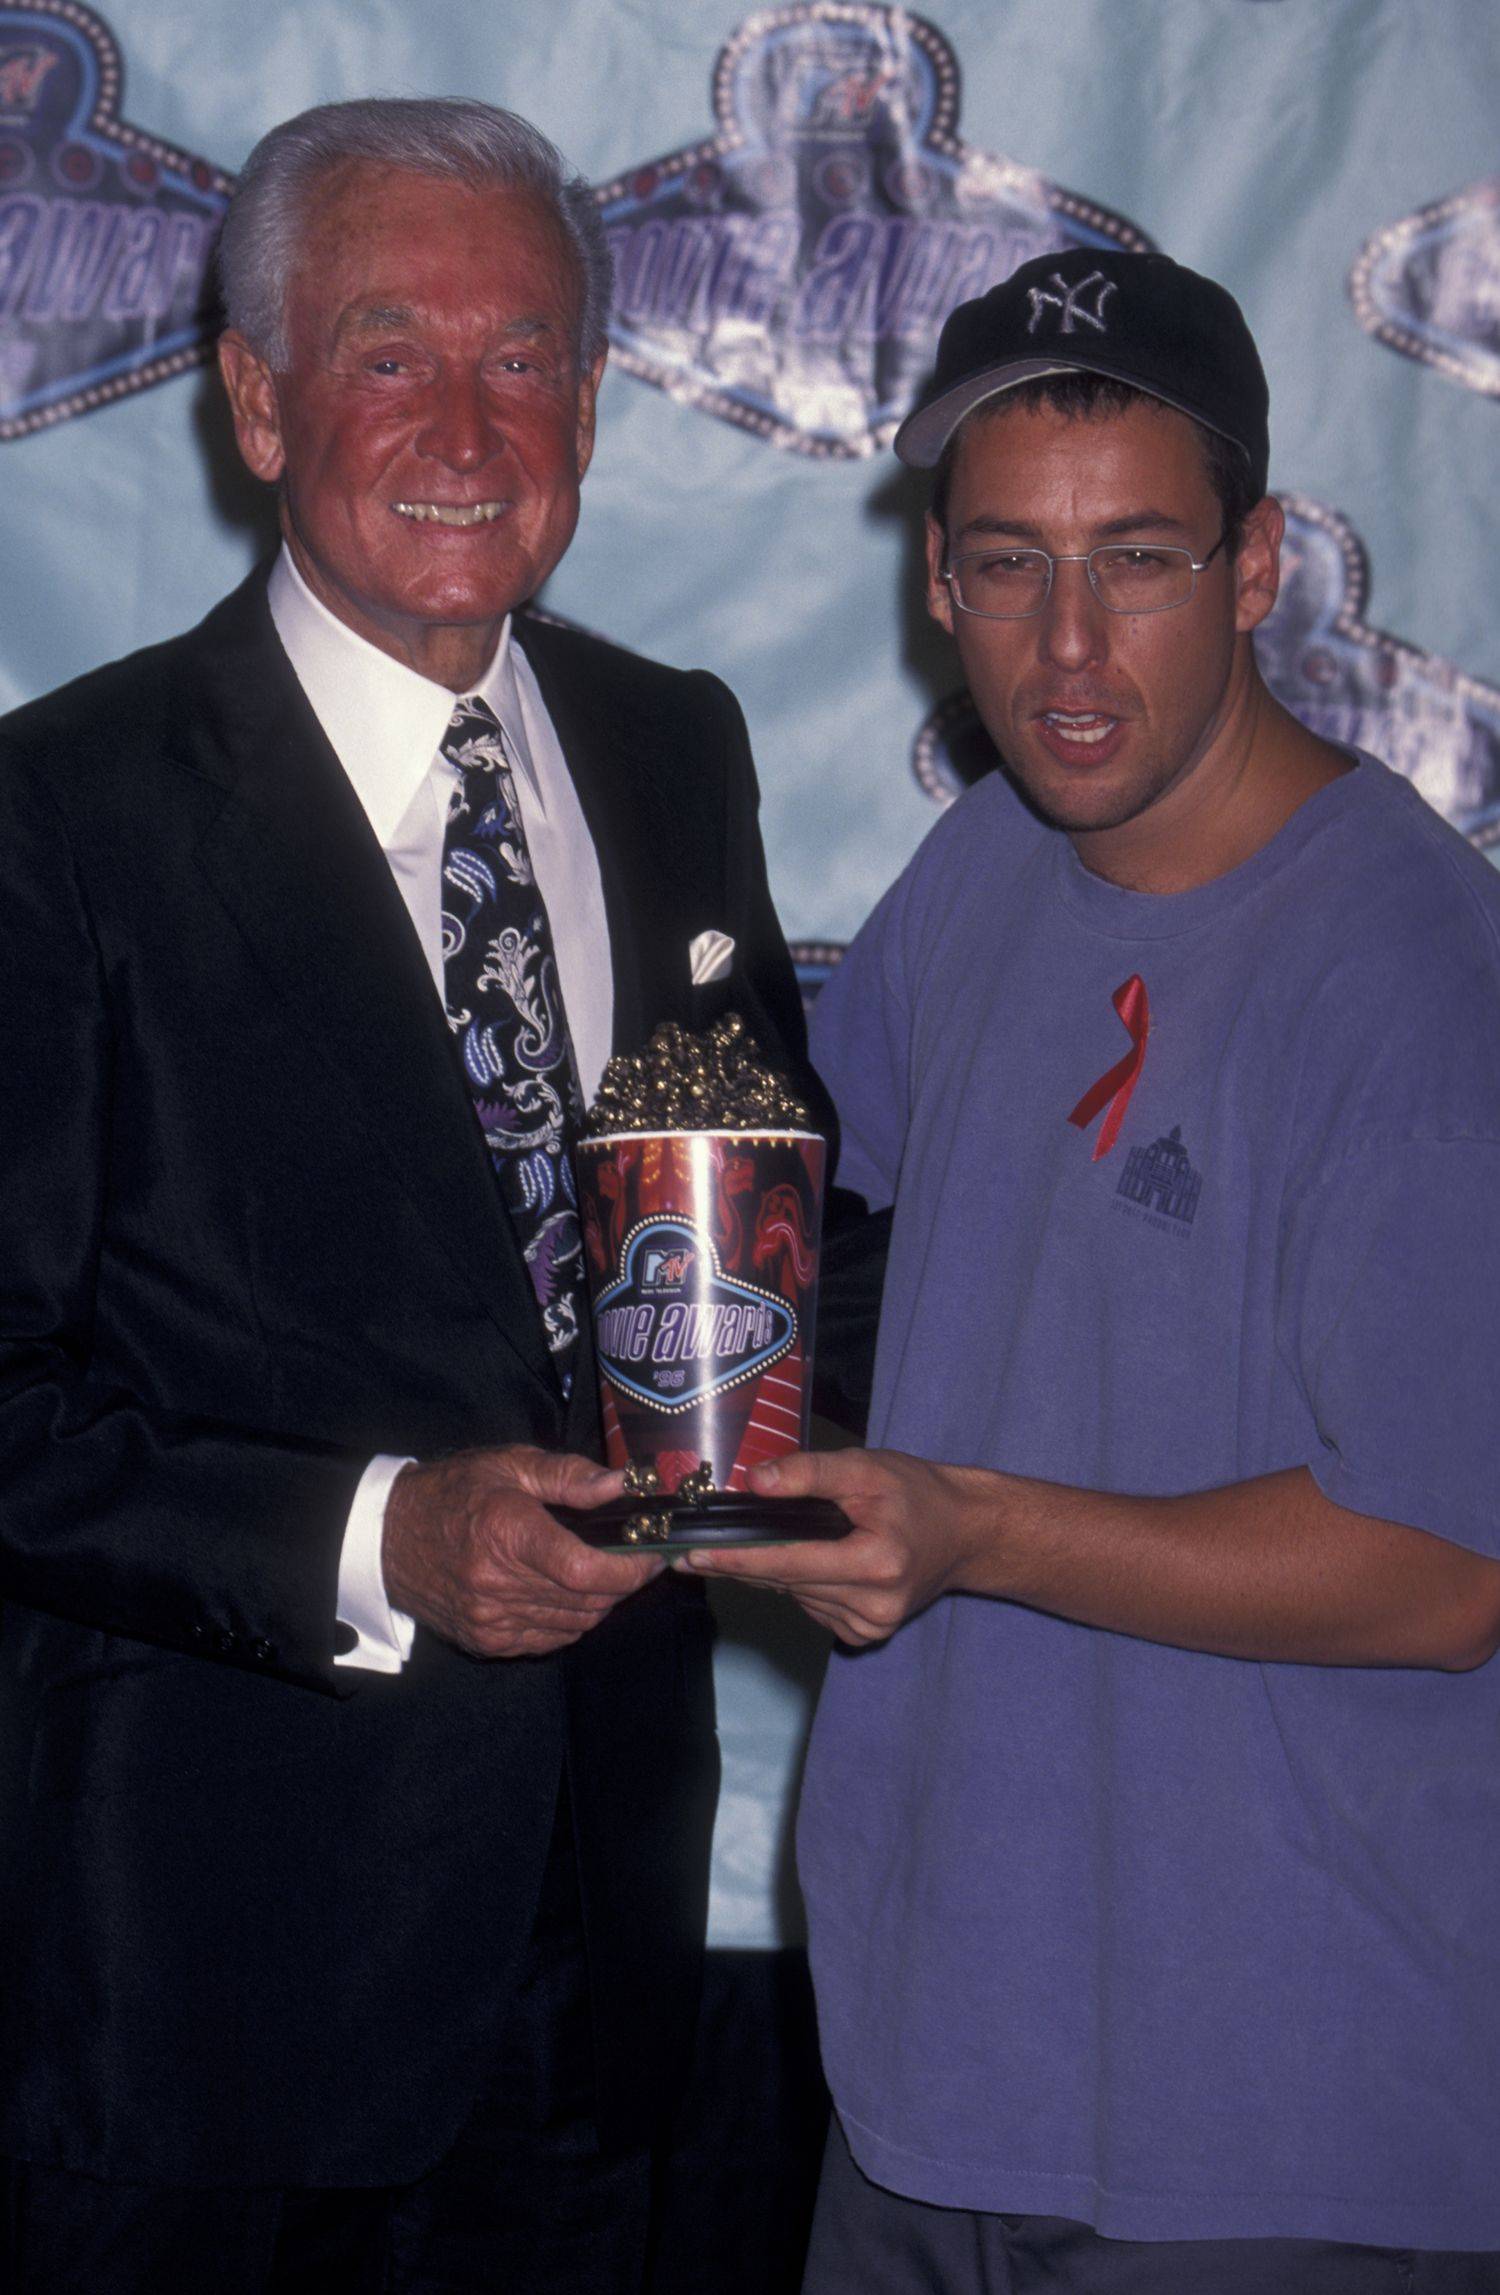 Bob Barker and Adam Sandler attend Fifth Annual MTV Movie Awards on June 8, 1996 at Disney Studios in Anaheim, California. (Photo by Ron Galella, Ltd./WireImage)